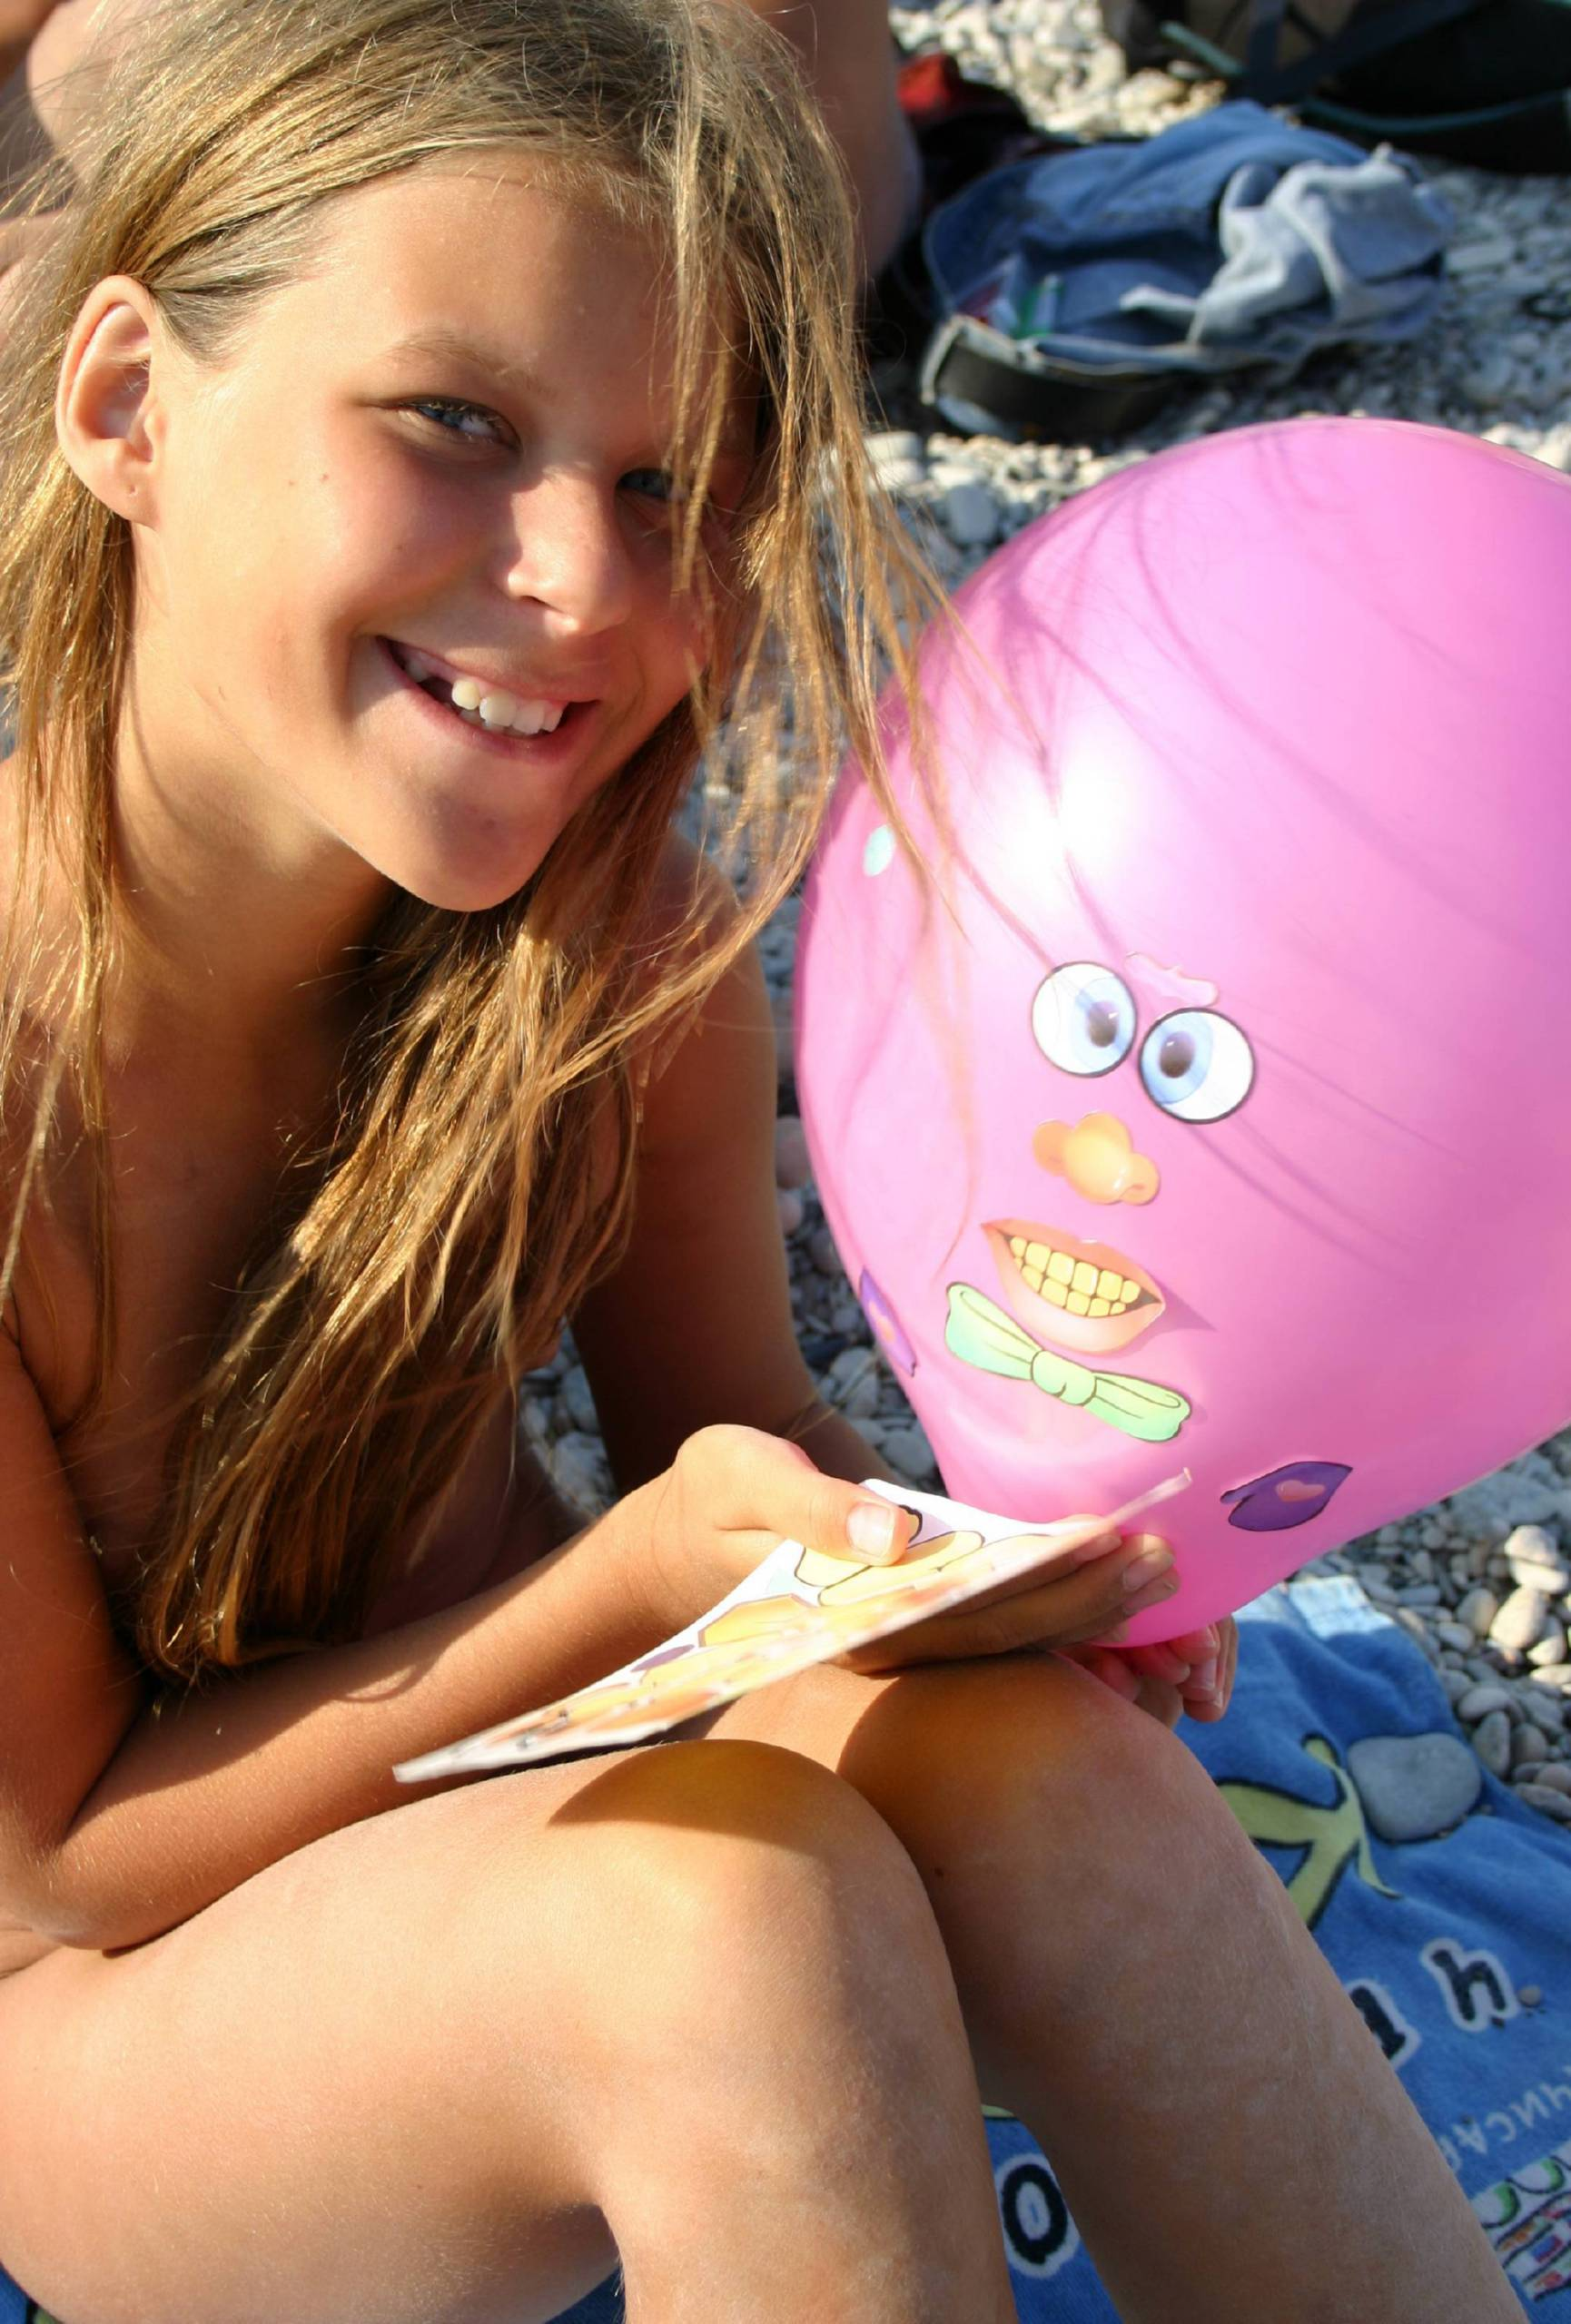 Nudist Pictures Our Beach Balloon Profile - 2